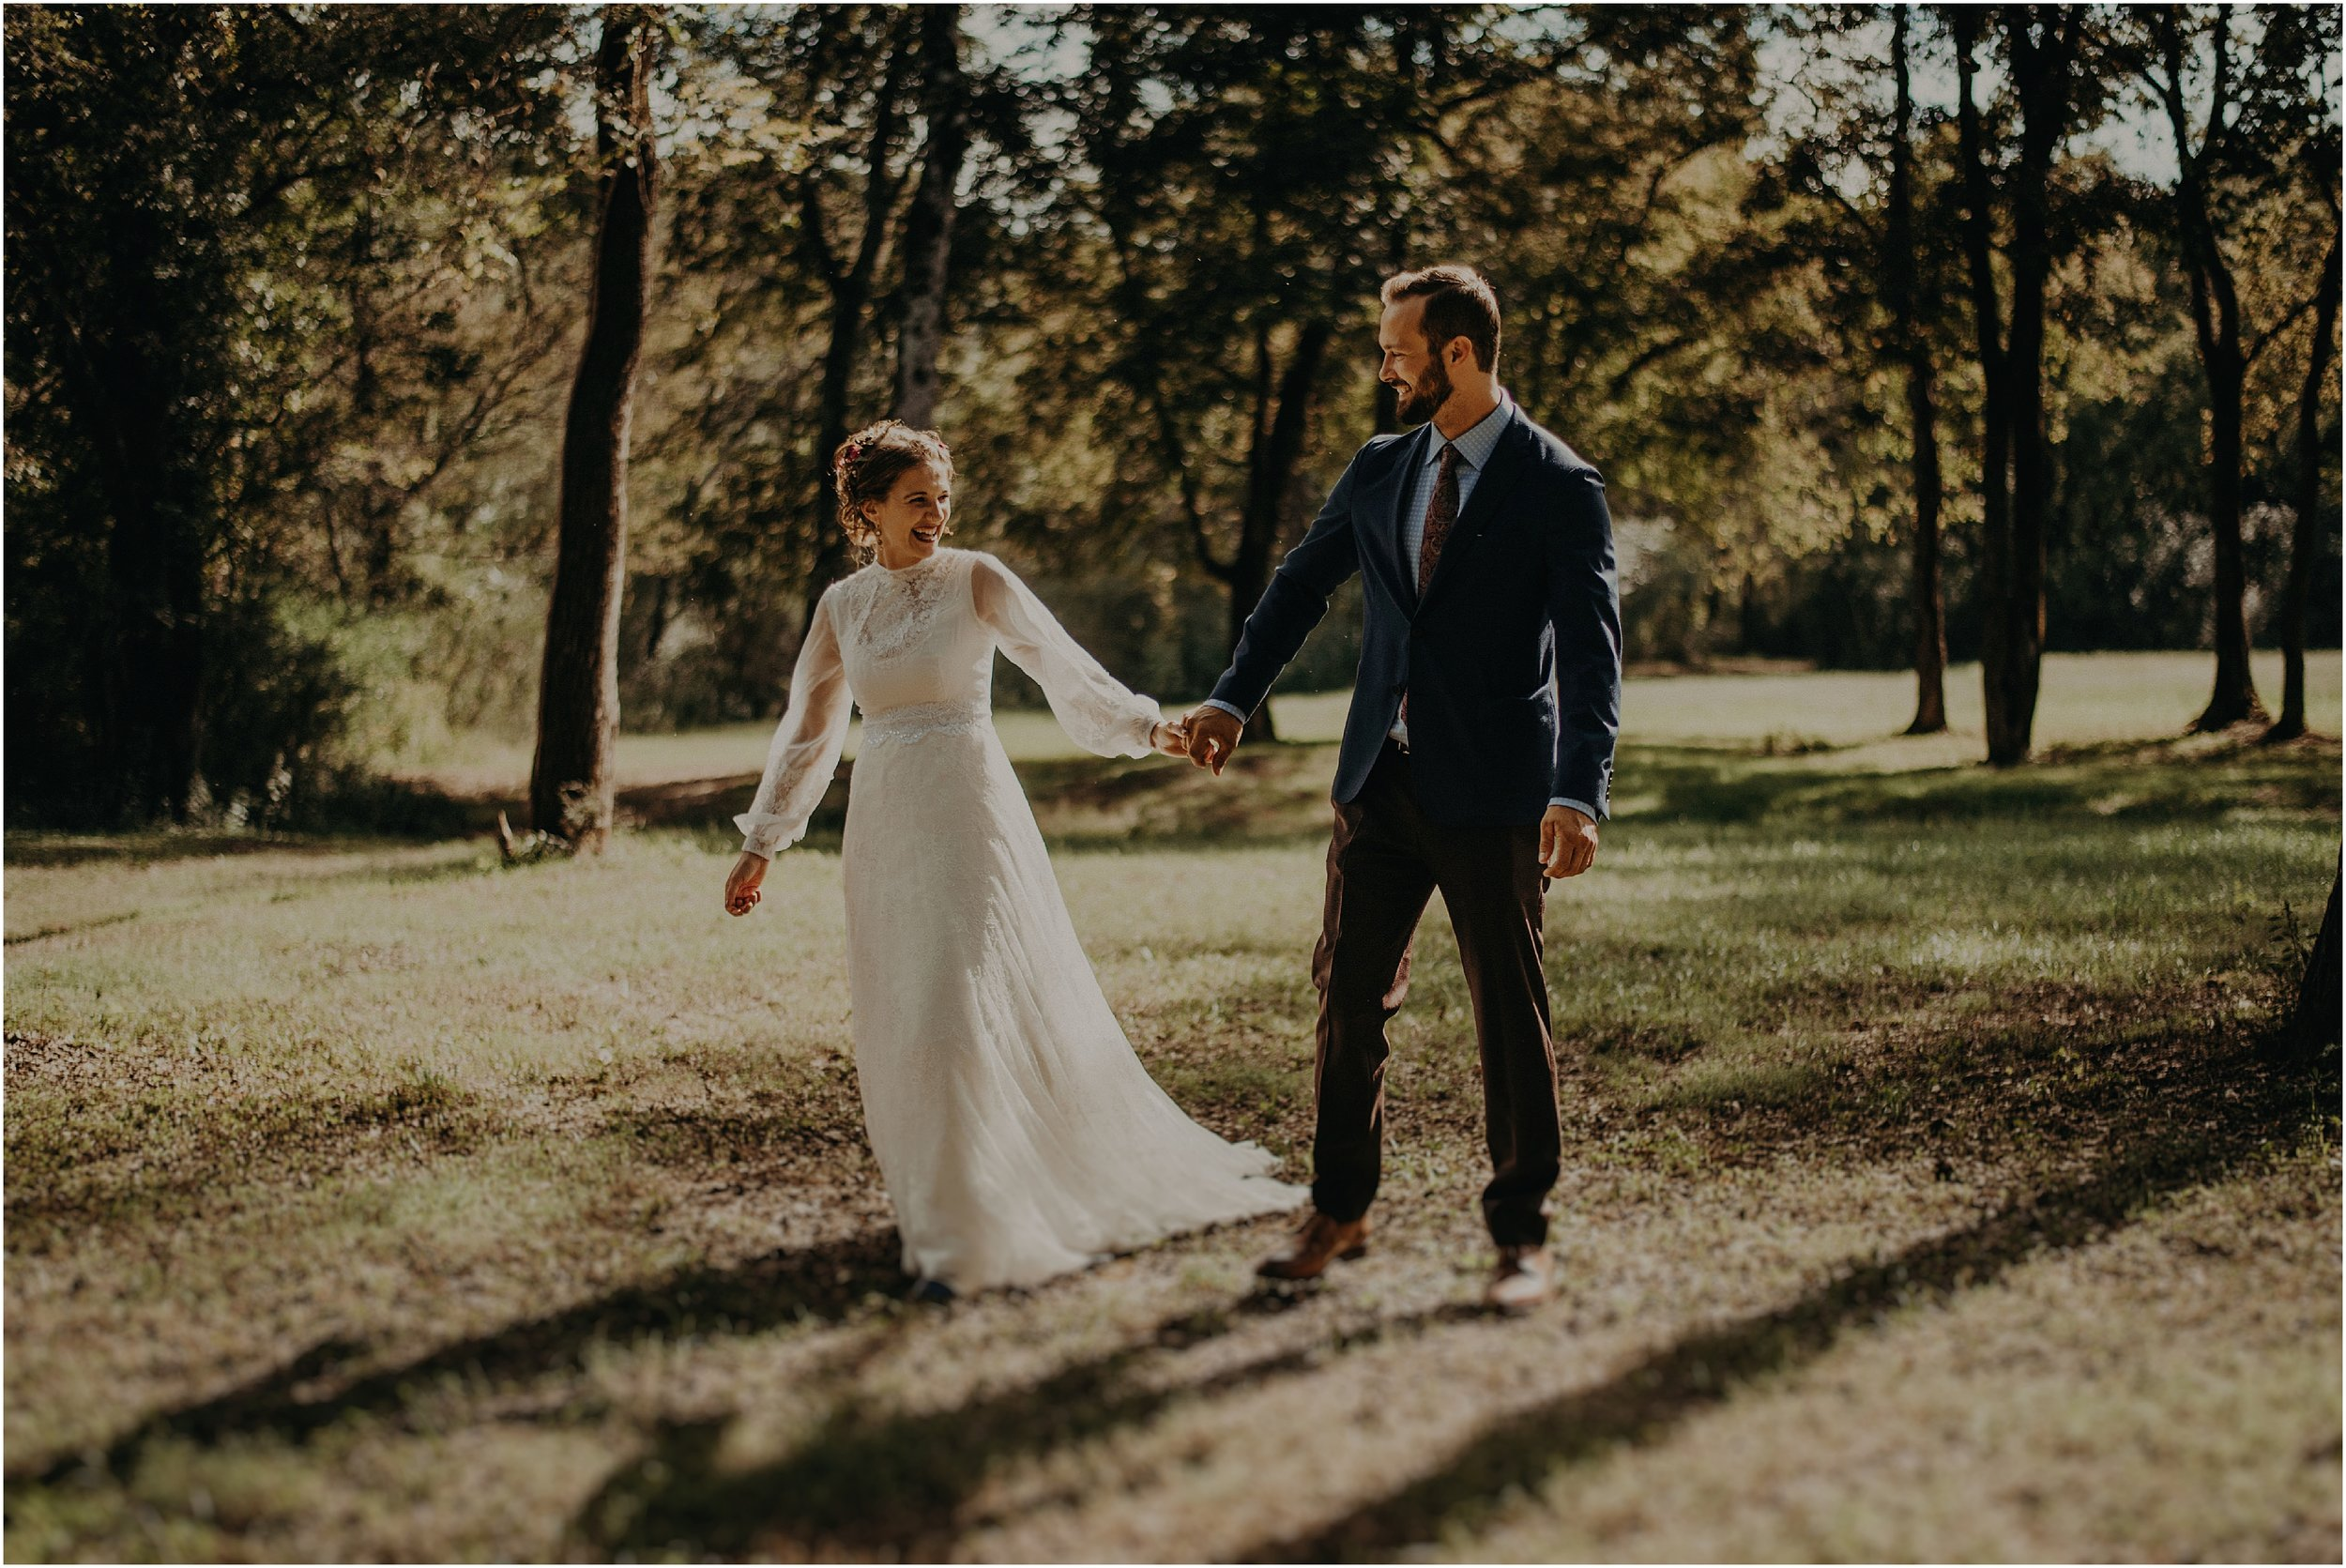 Etherial bohemian wedding vibes for this mountain wedding